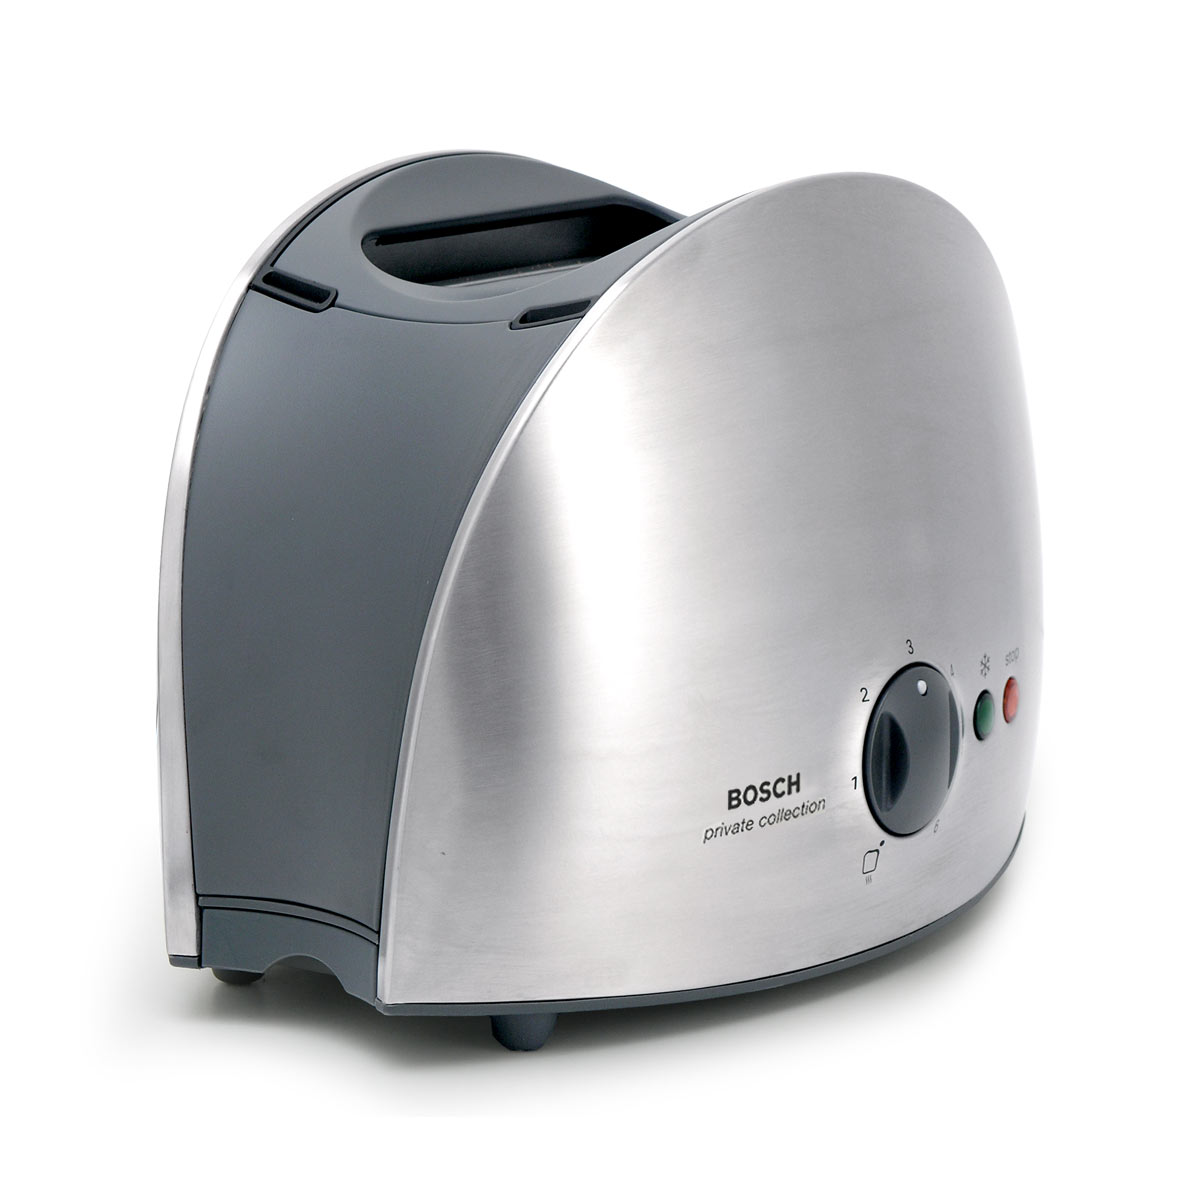 Productdesign Toaster for BSH